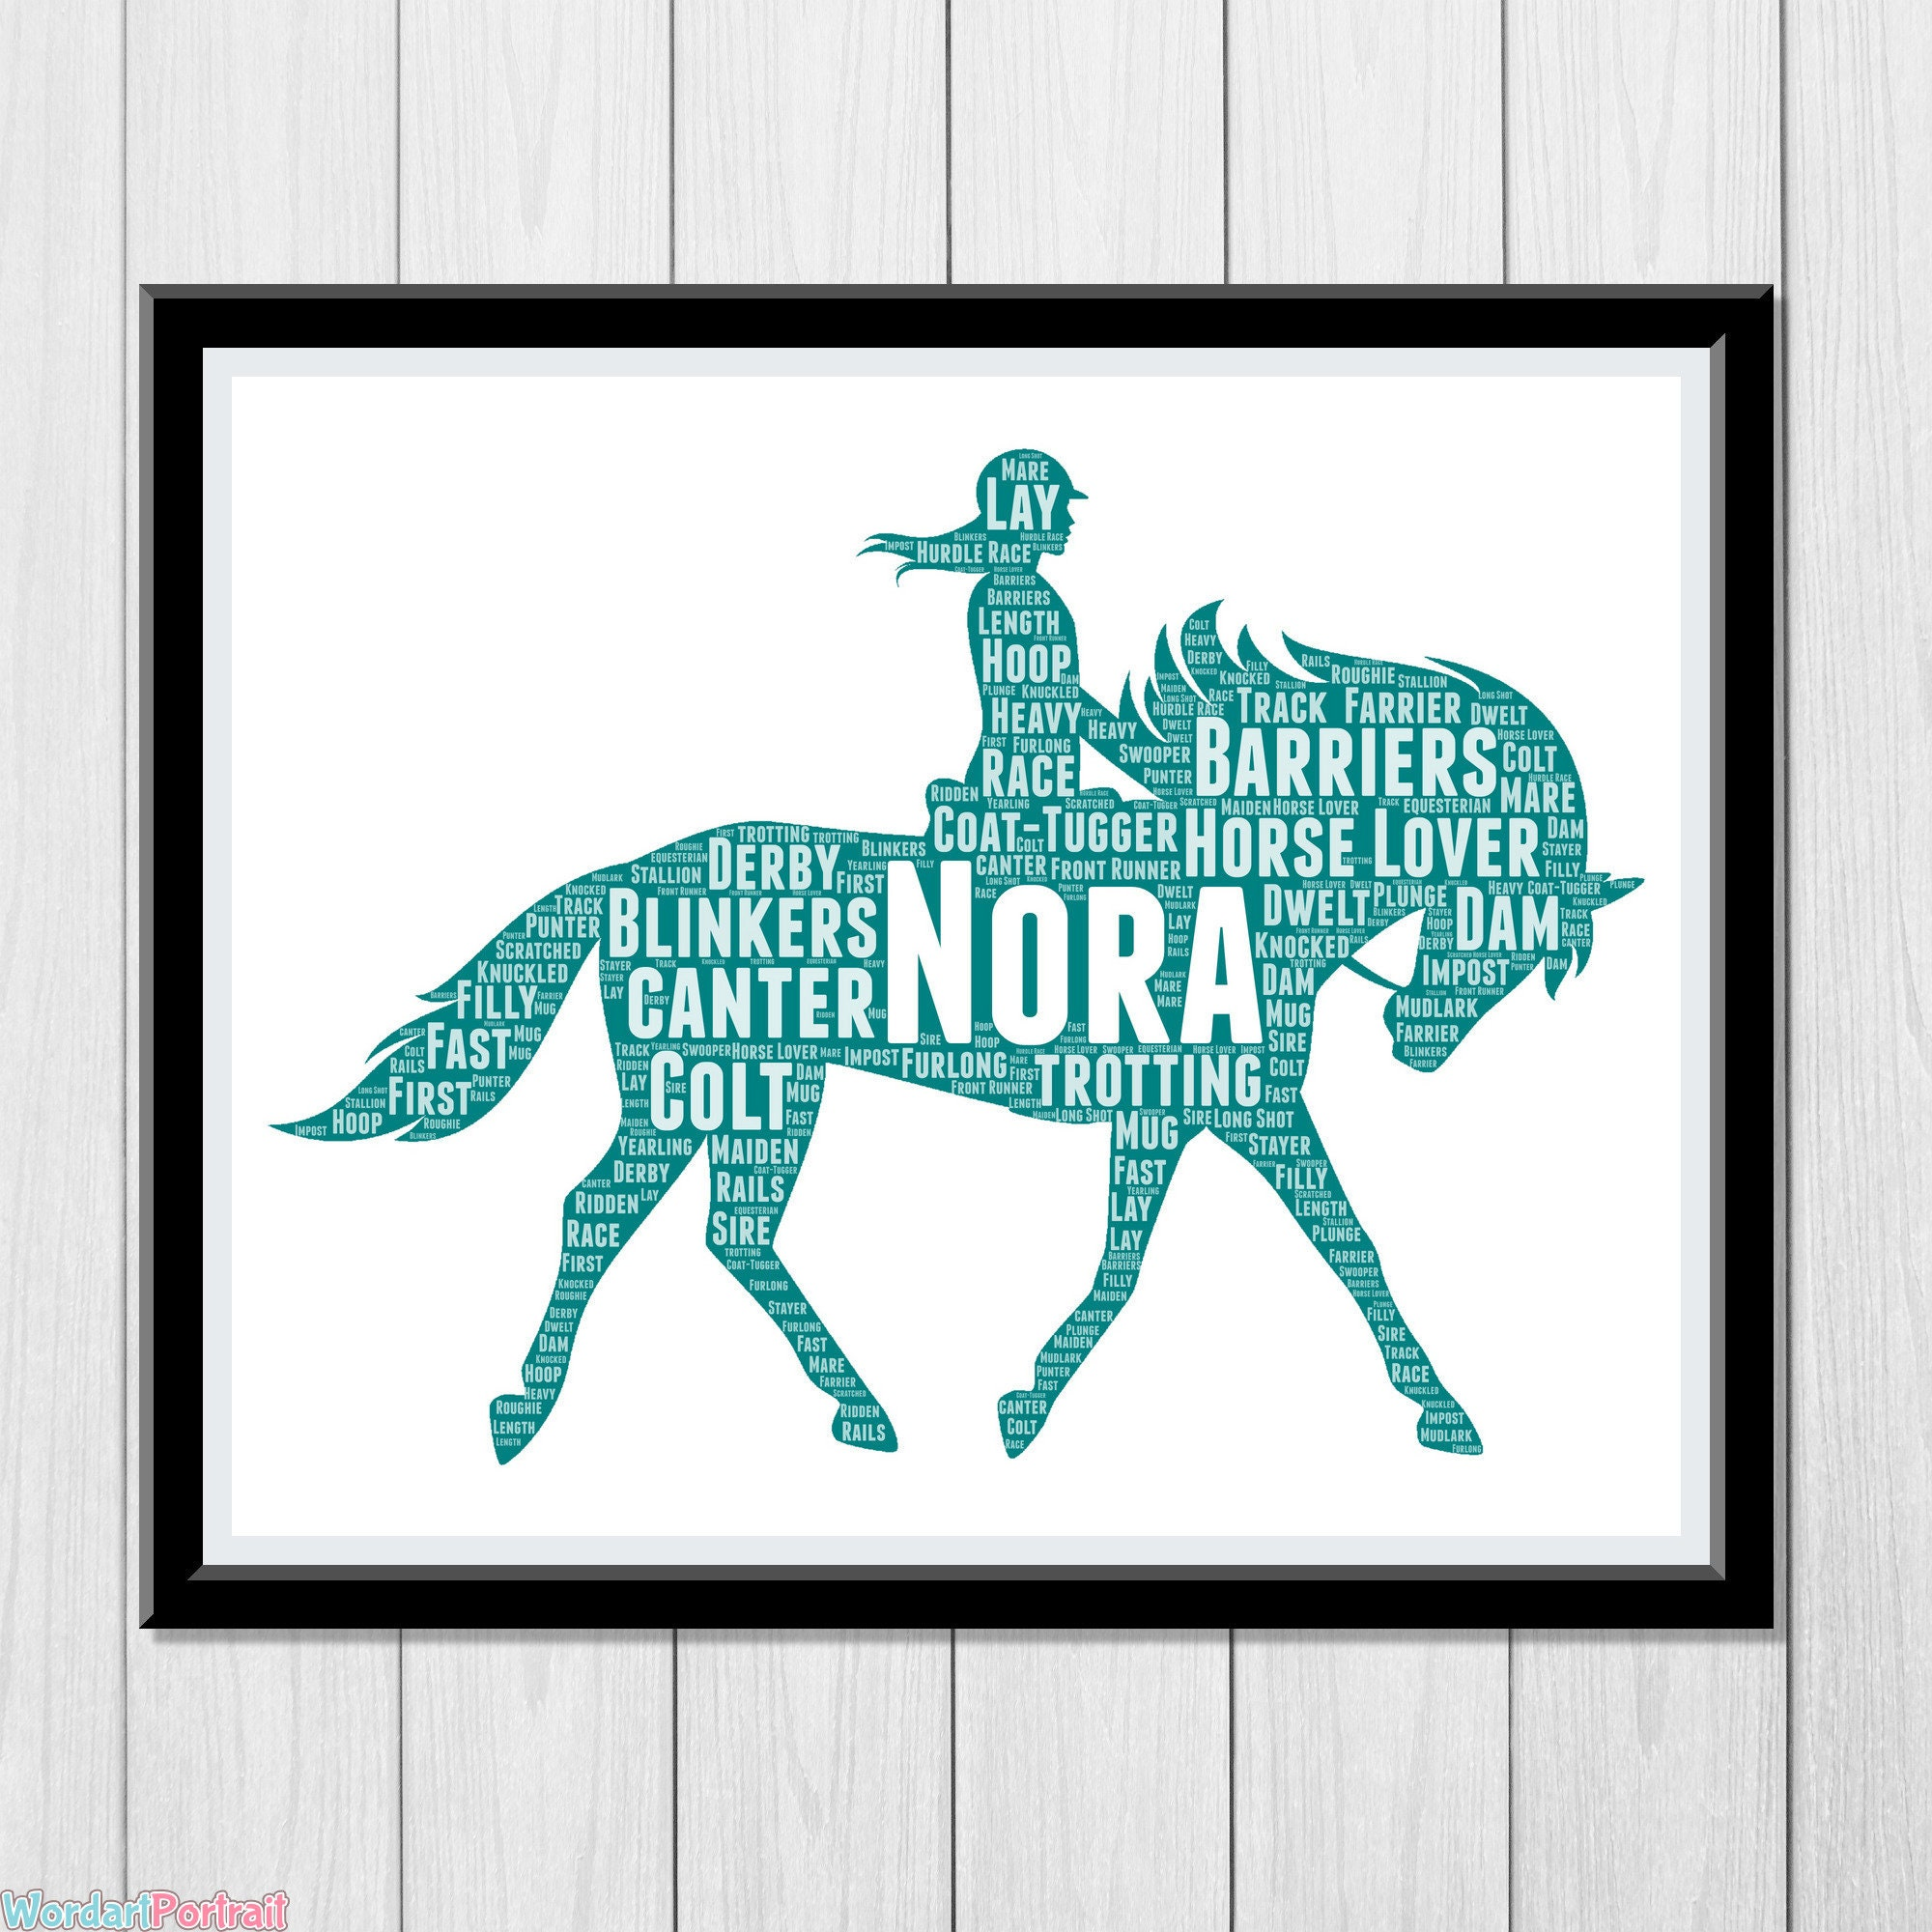 Horse Gift - Personalize Gift for Horse Rider - Dressage Showjumping Event Equestrian Gifts Horse Lover Owner Horse Rider Wordle Wall Print